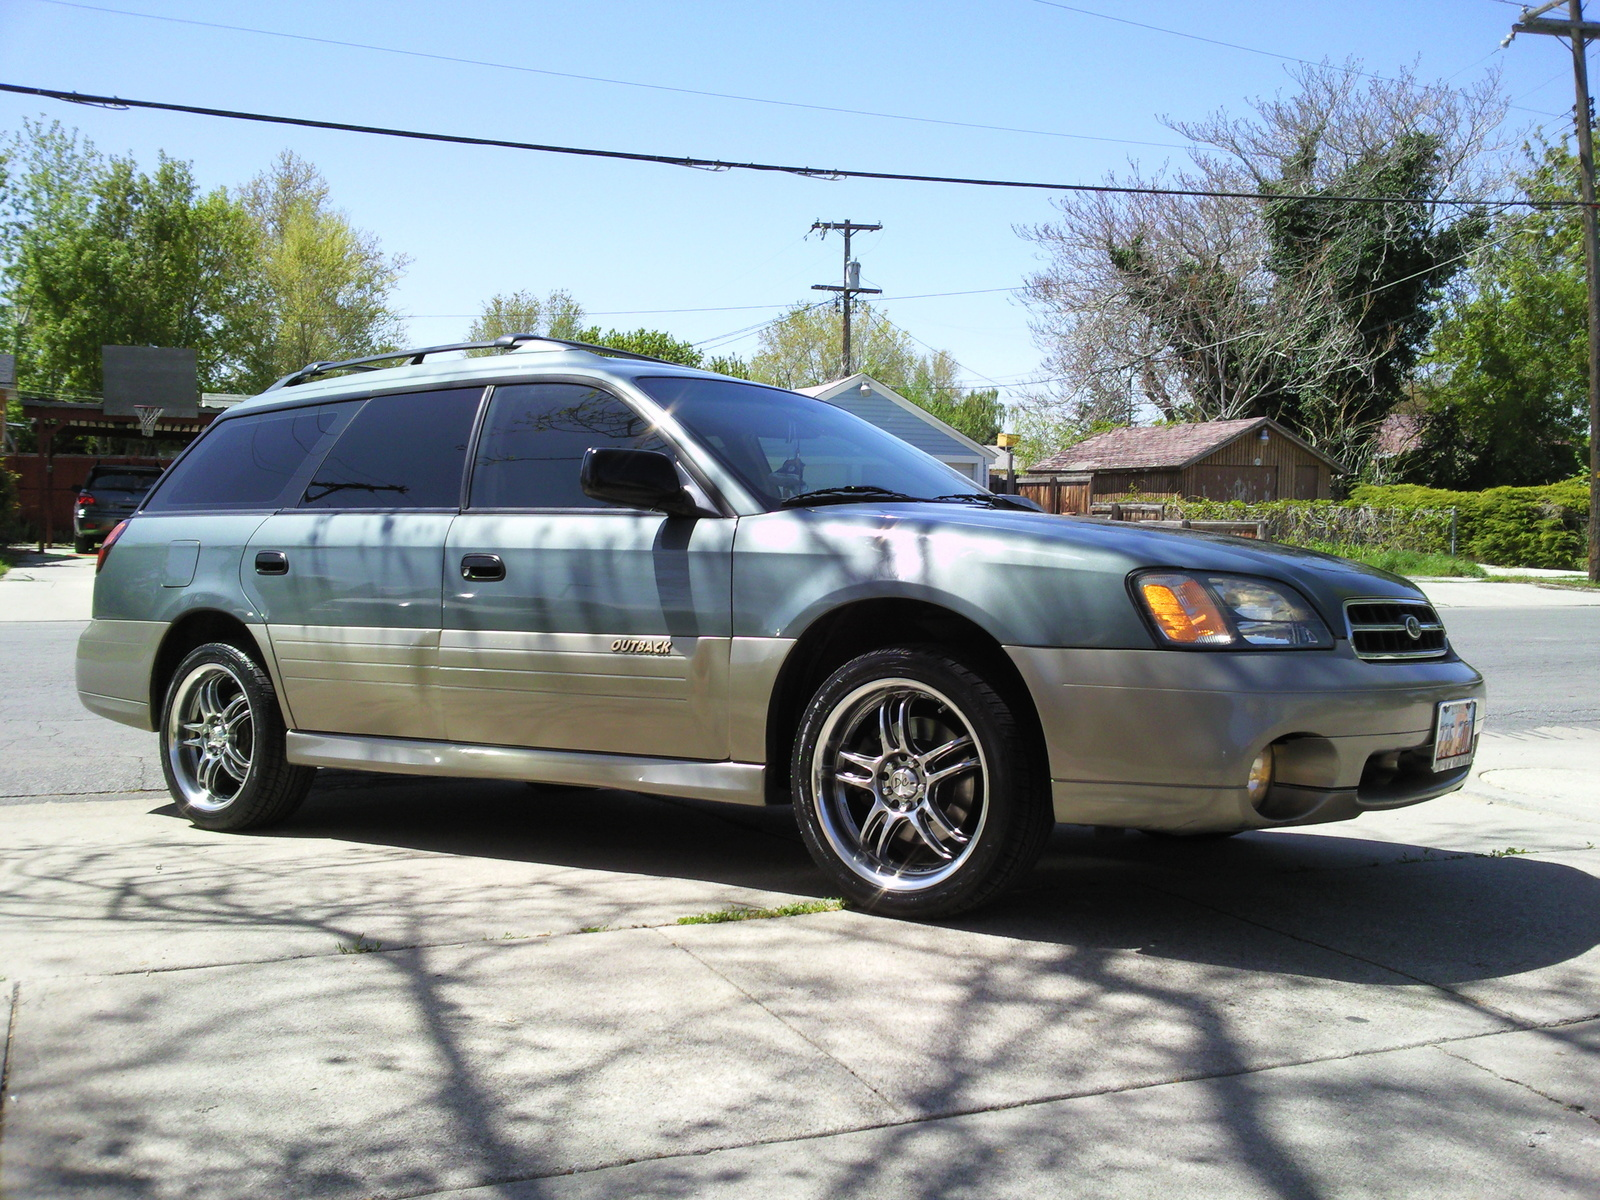 Picture of 2002 subaru outback base wagon exterior gallery_worthy